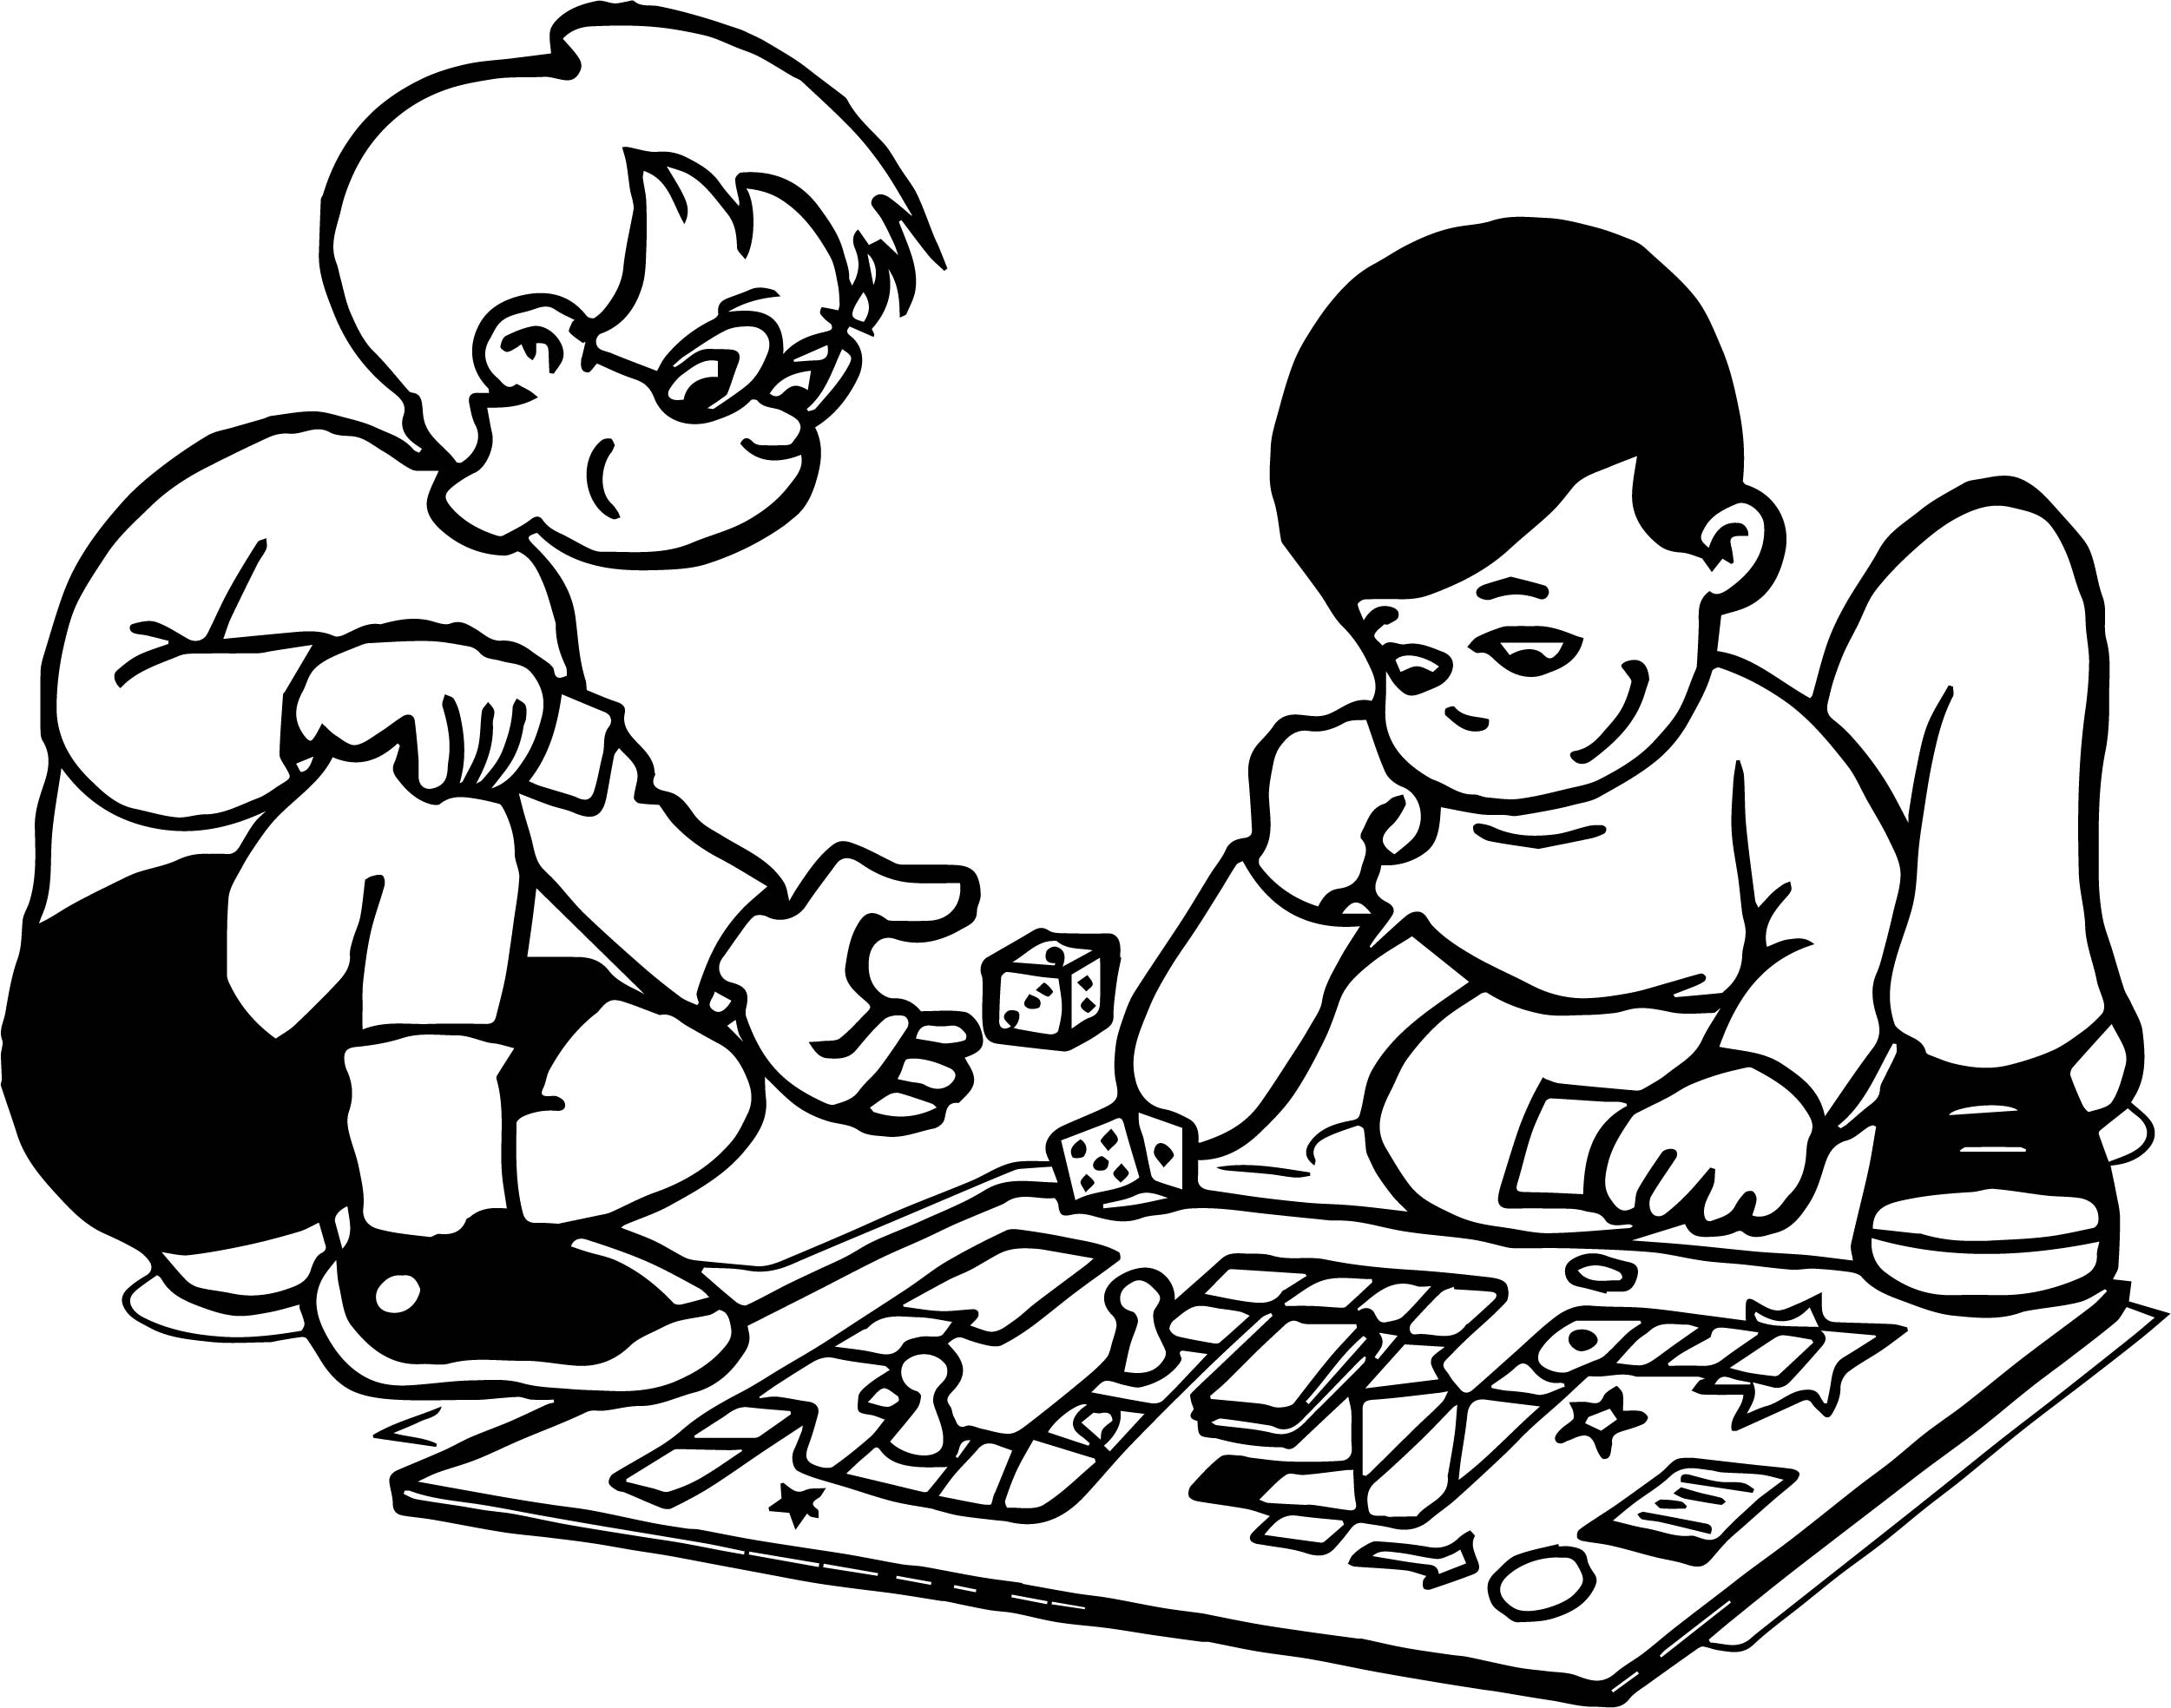 monoply coloring pages - photo#19